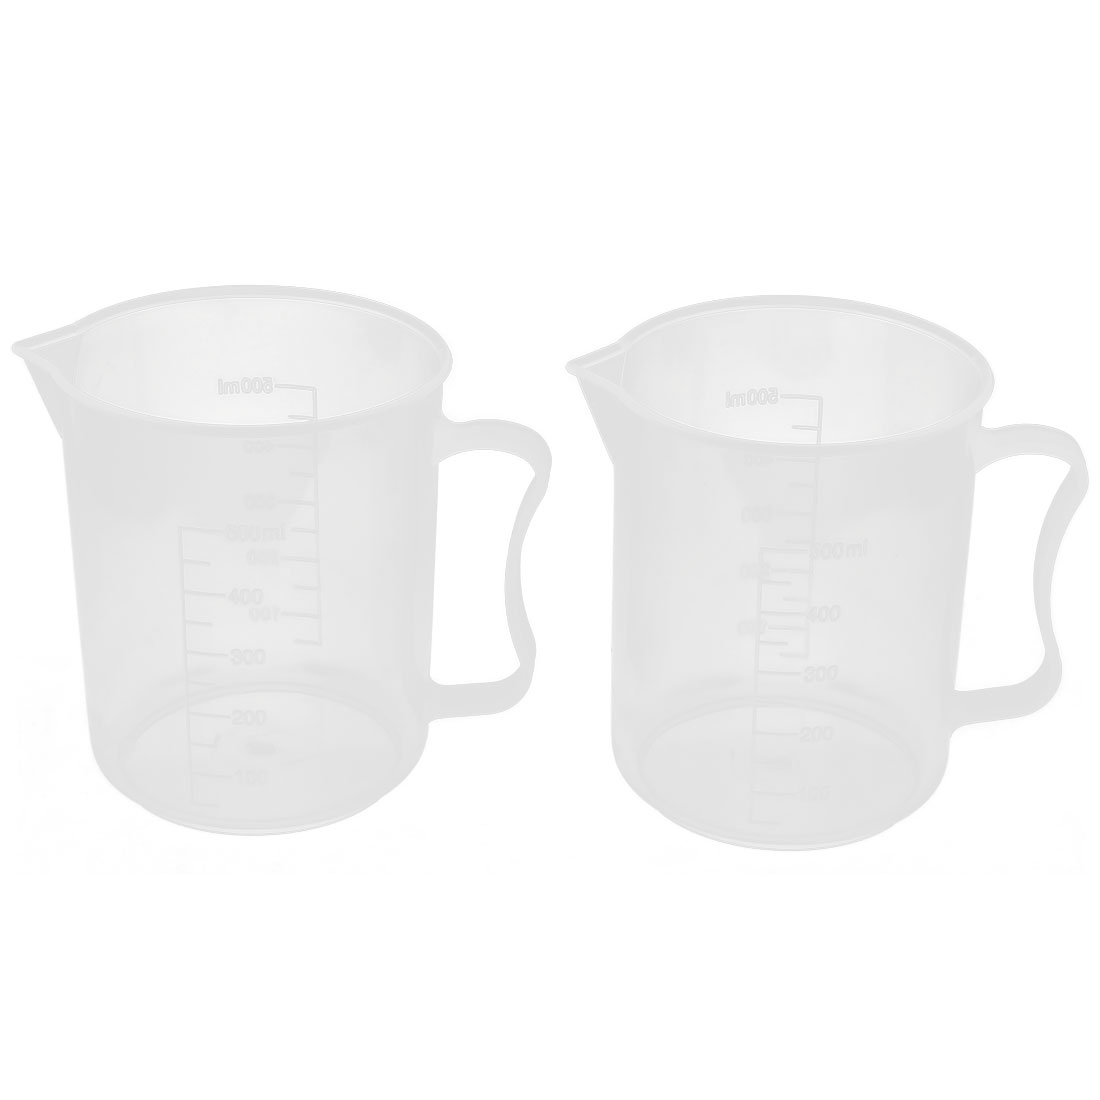 Lab Chemistry Experiment Liquid Storage Measuring Testing Beaker Cup 500ml 2 Pcs